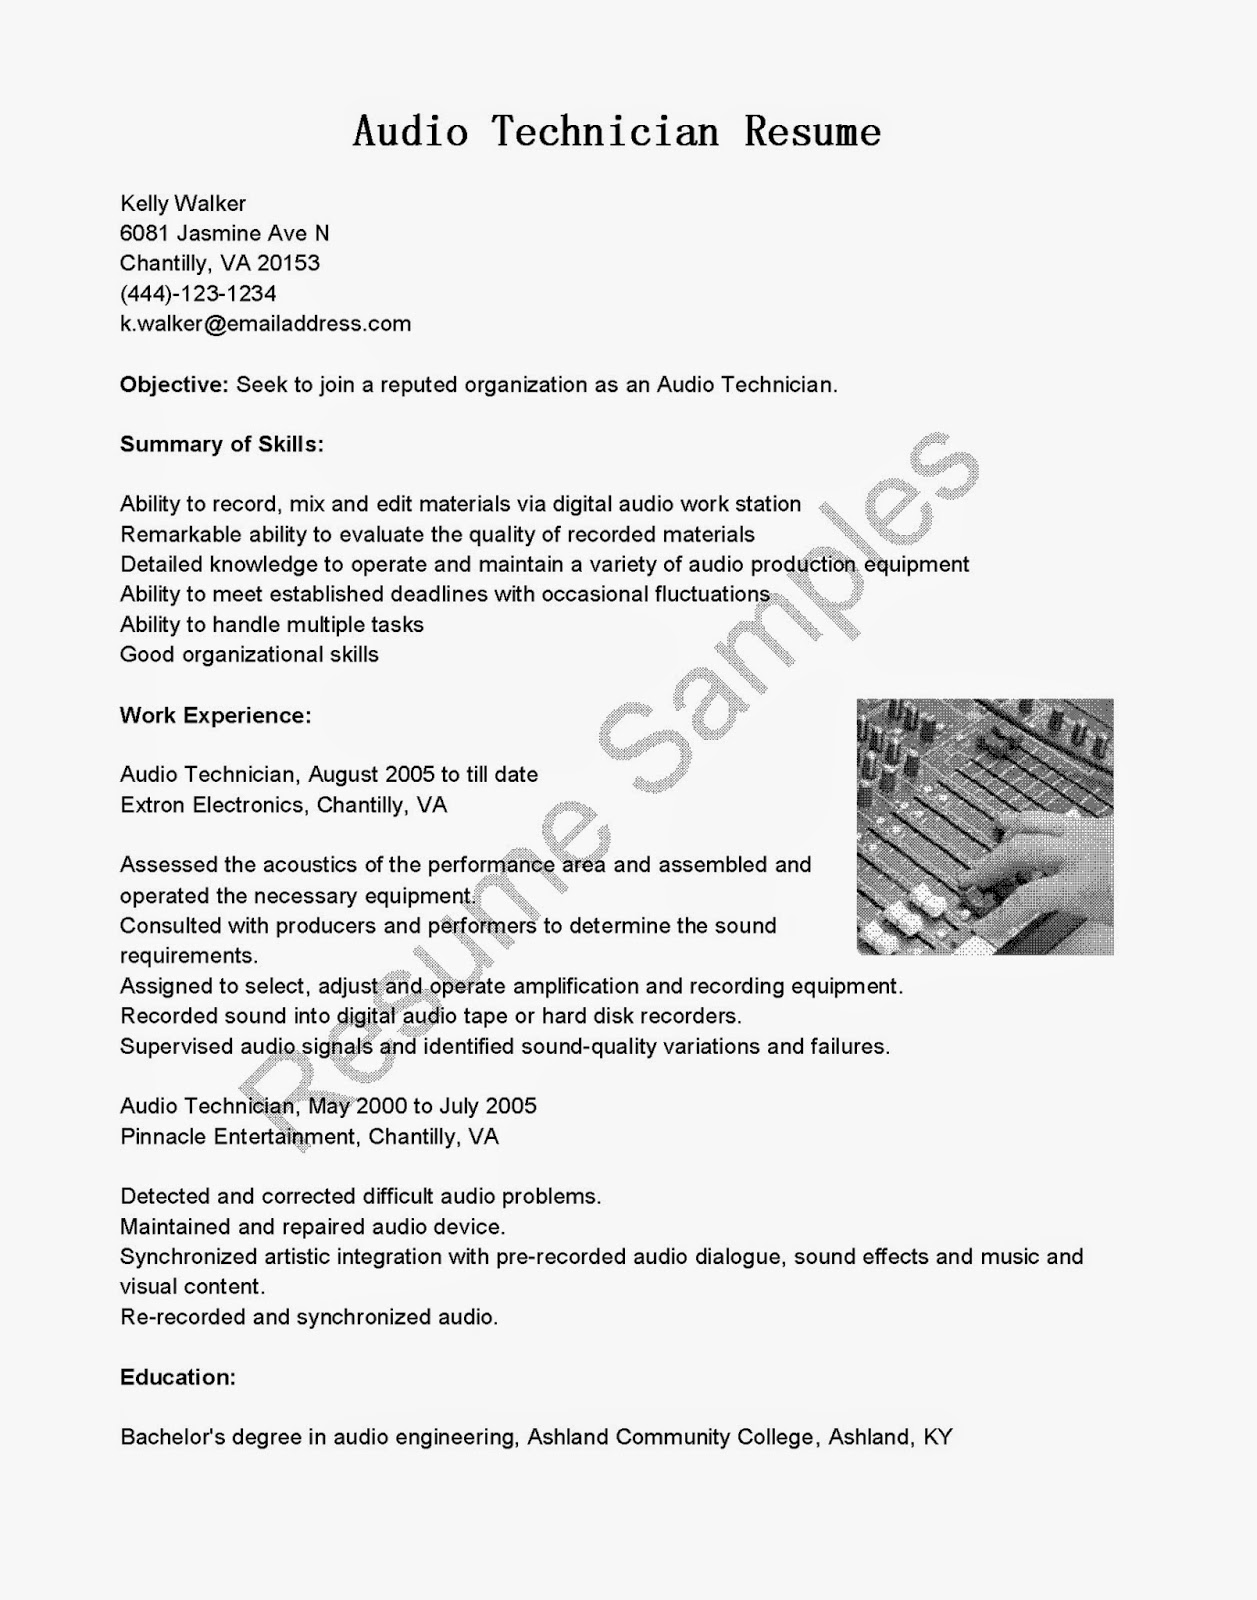 Electronic homework pages csudh chemistry department cover letter sample cover letter computer science cover letter for computer madrichimfo Choice Image